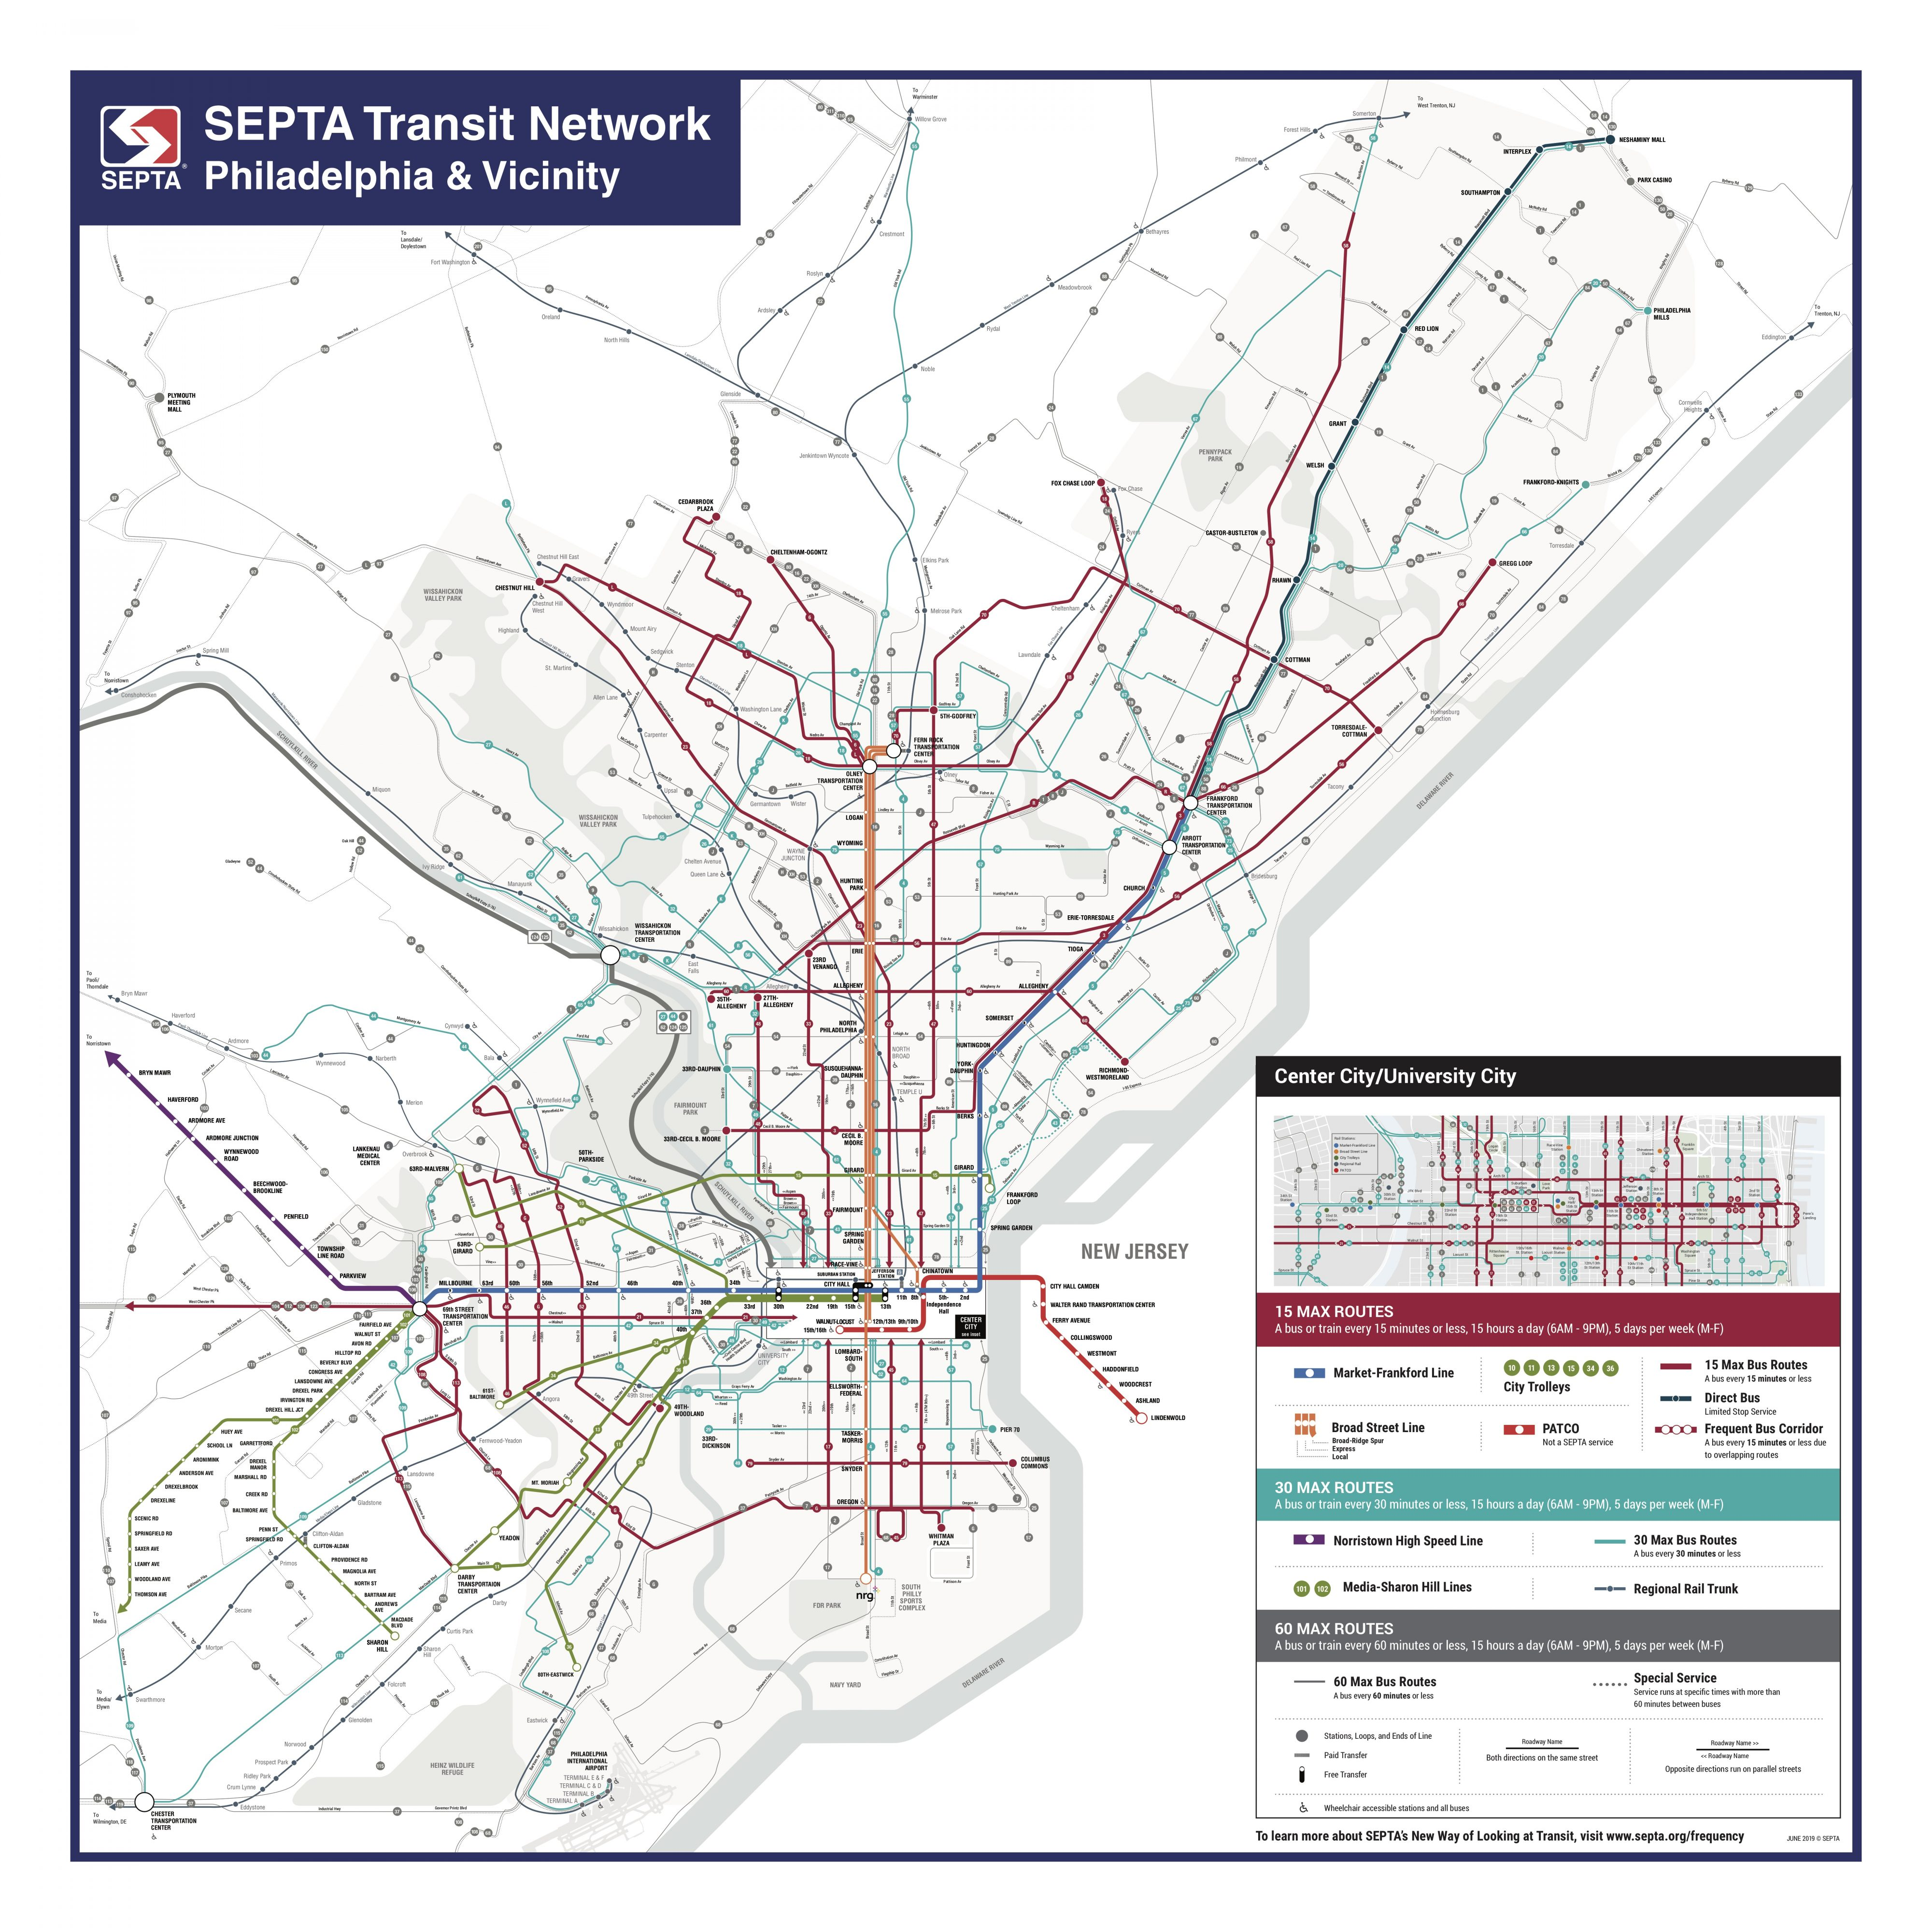 Philly Subway Map.Septa To Install New Transit Maps Whyy